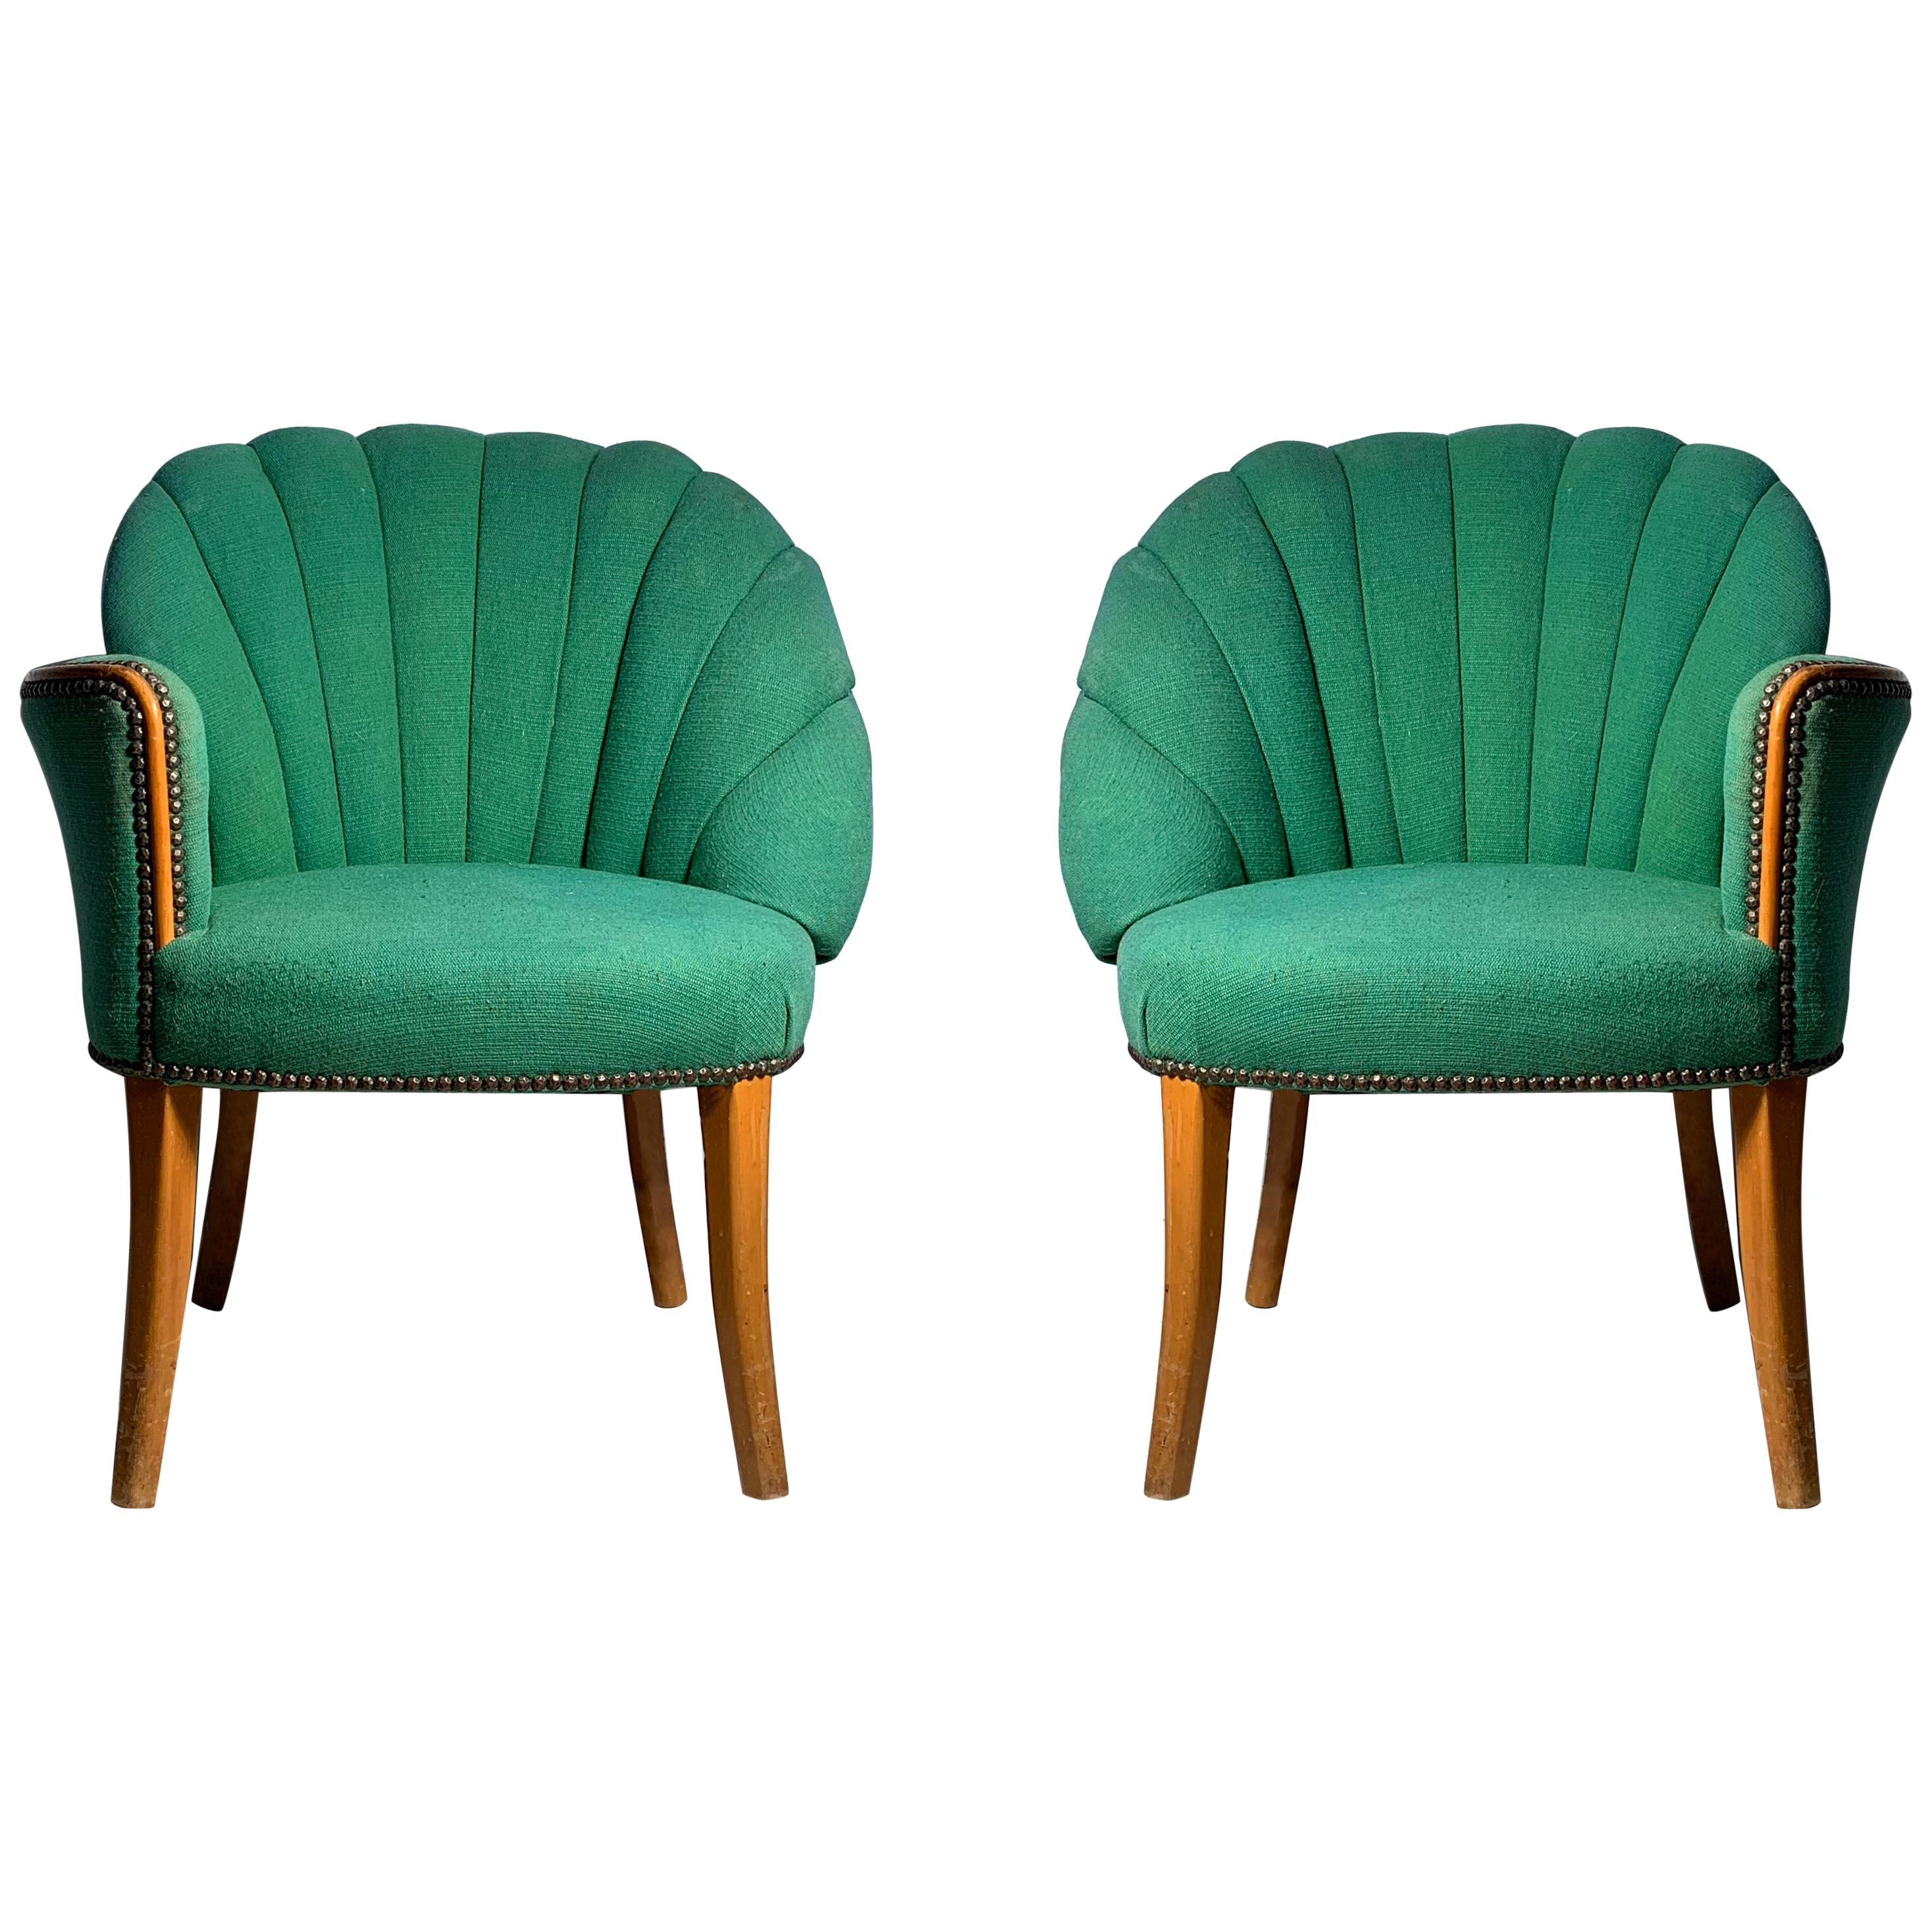 Hollywood Regency High Style Art Deco Fan Shell Back Pair of Chairs